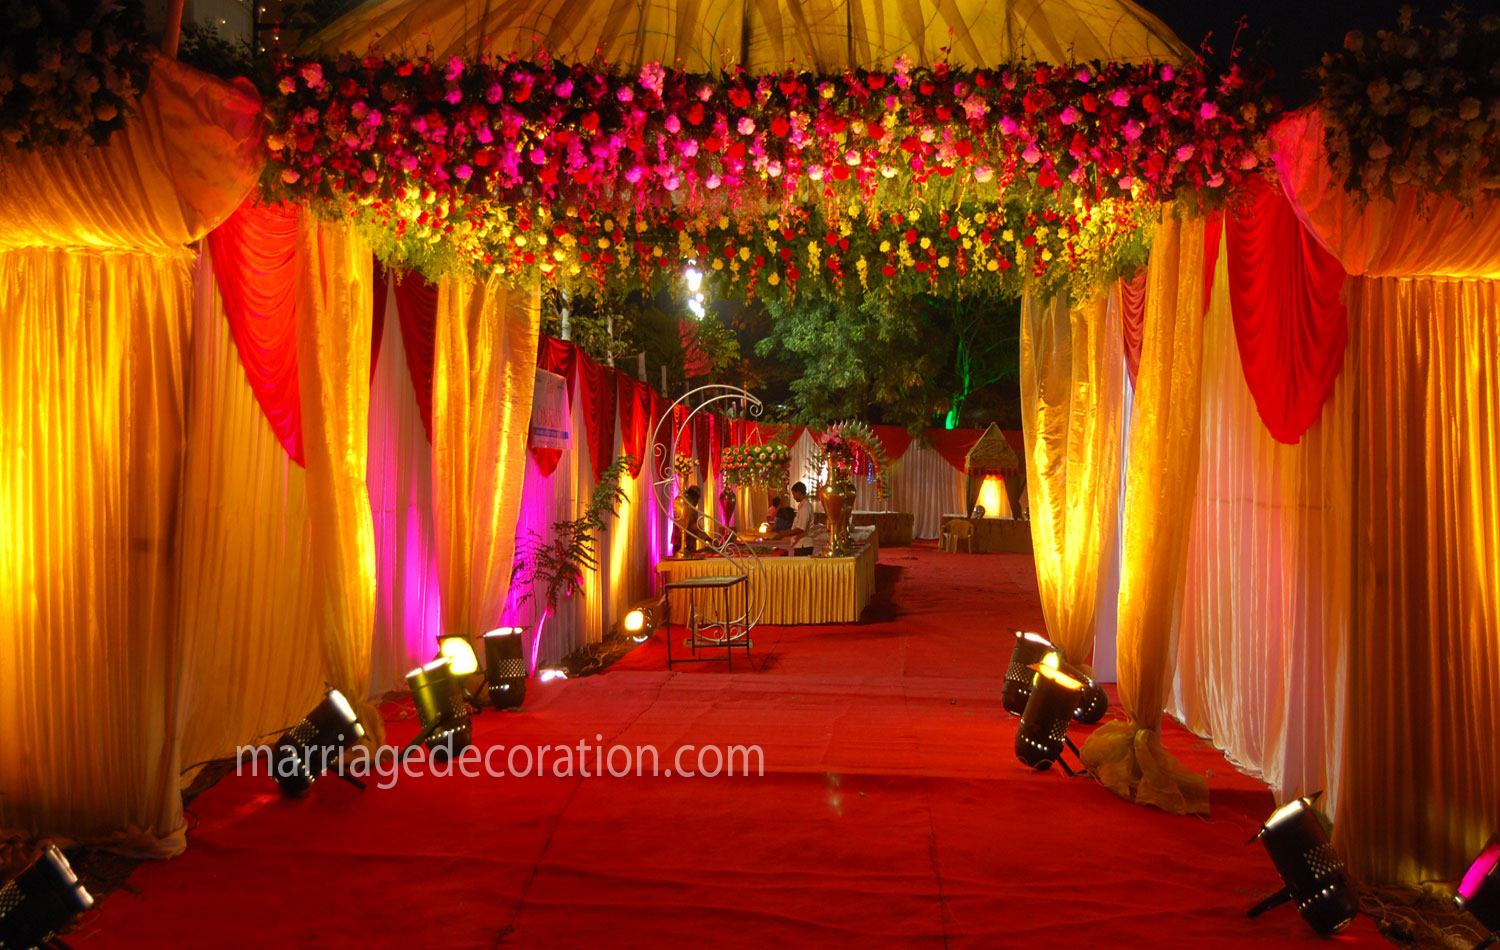 Wedding decorators romantic decoration for Wedding decoration images